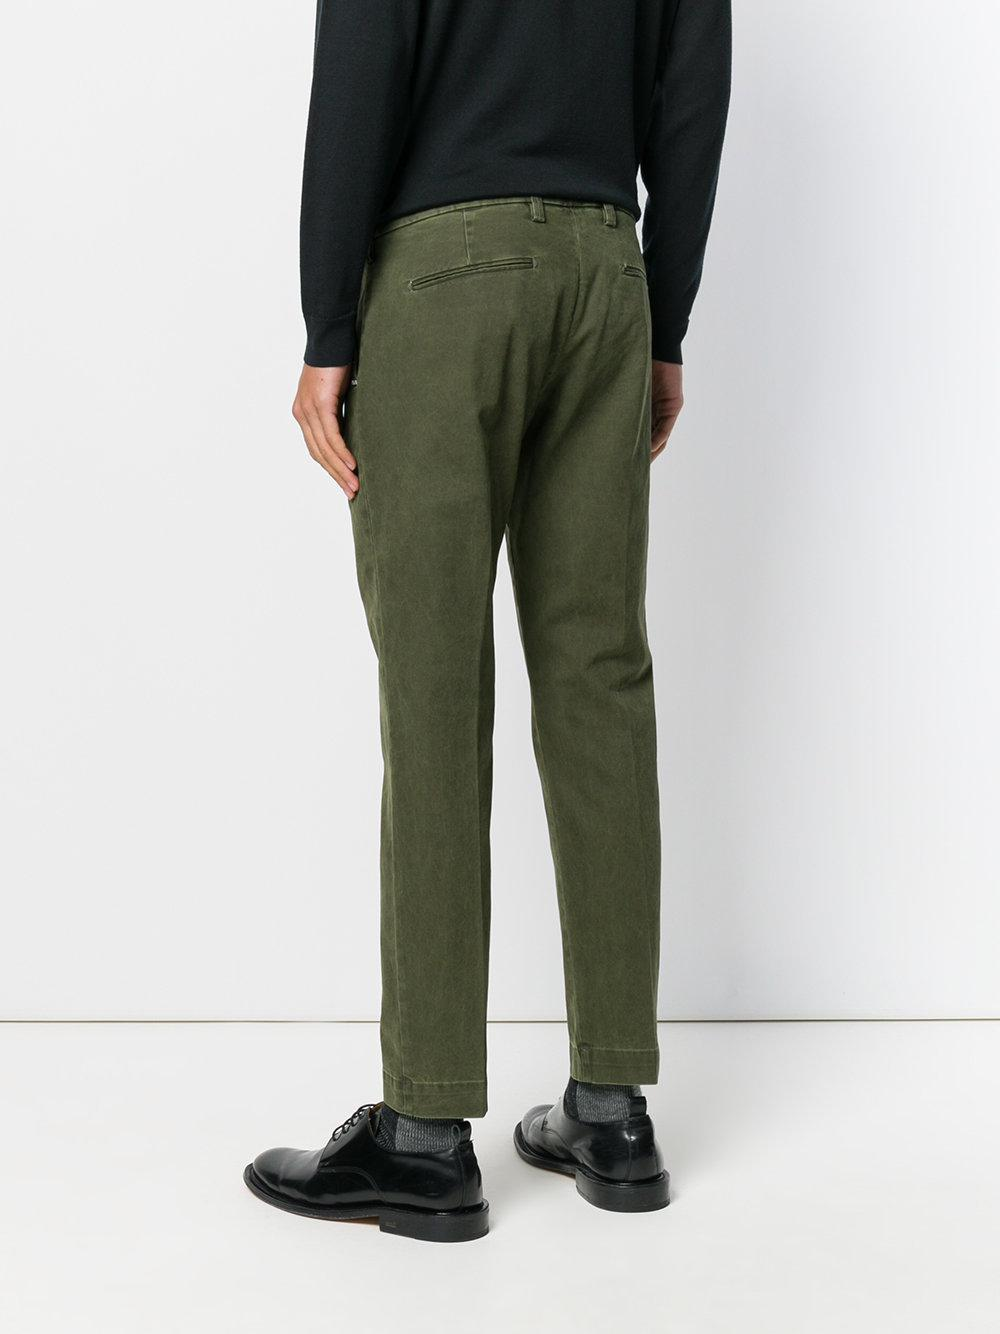 Entre Amis Denim Regular Fit Jeans in Green for Men